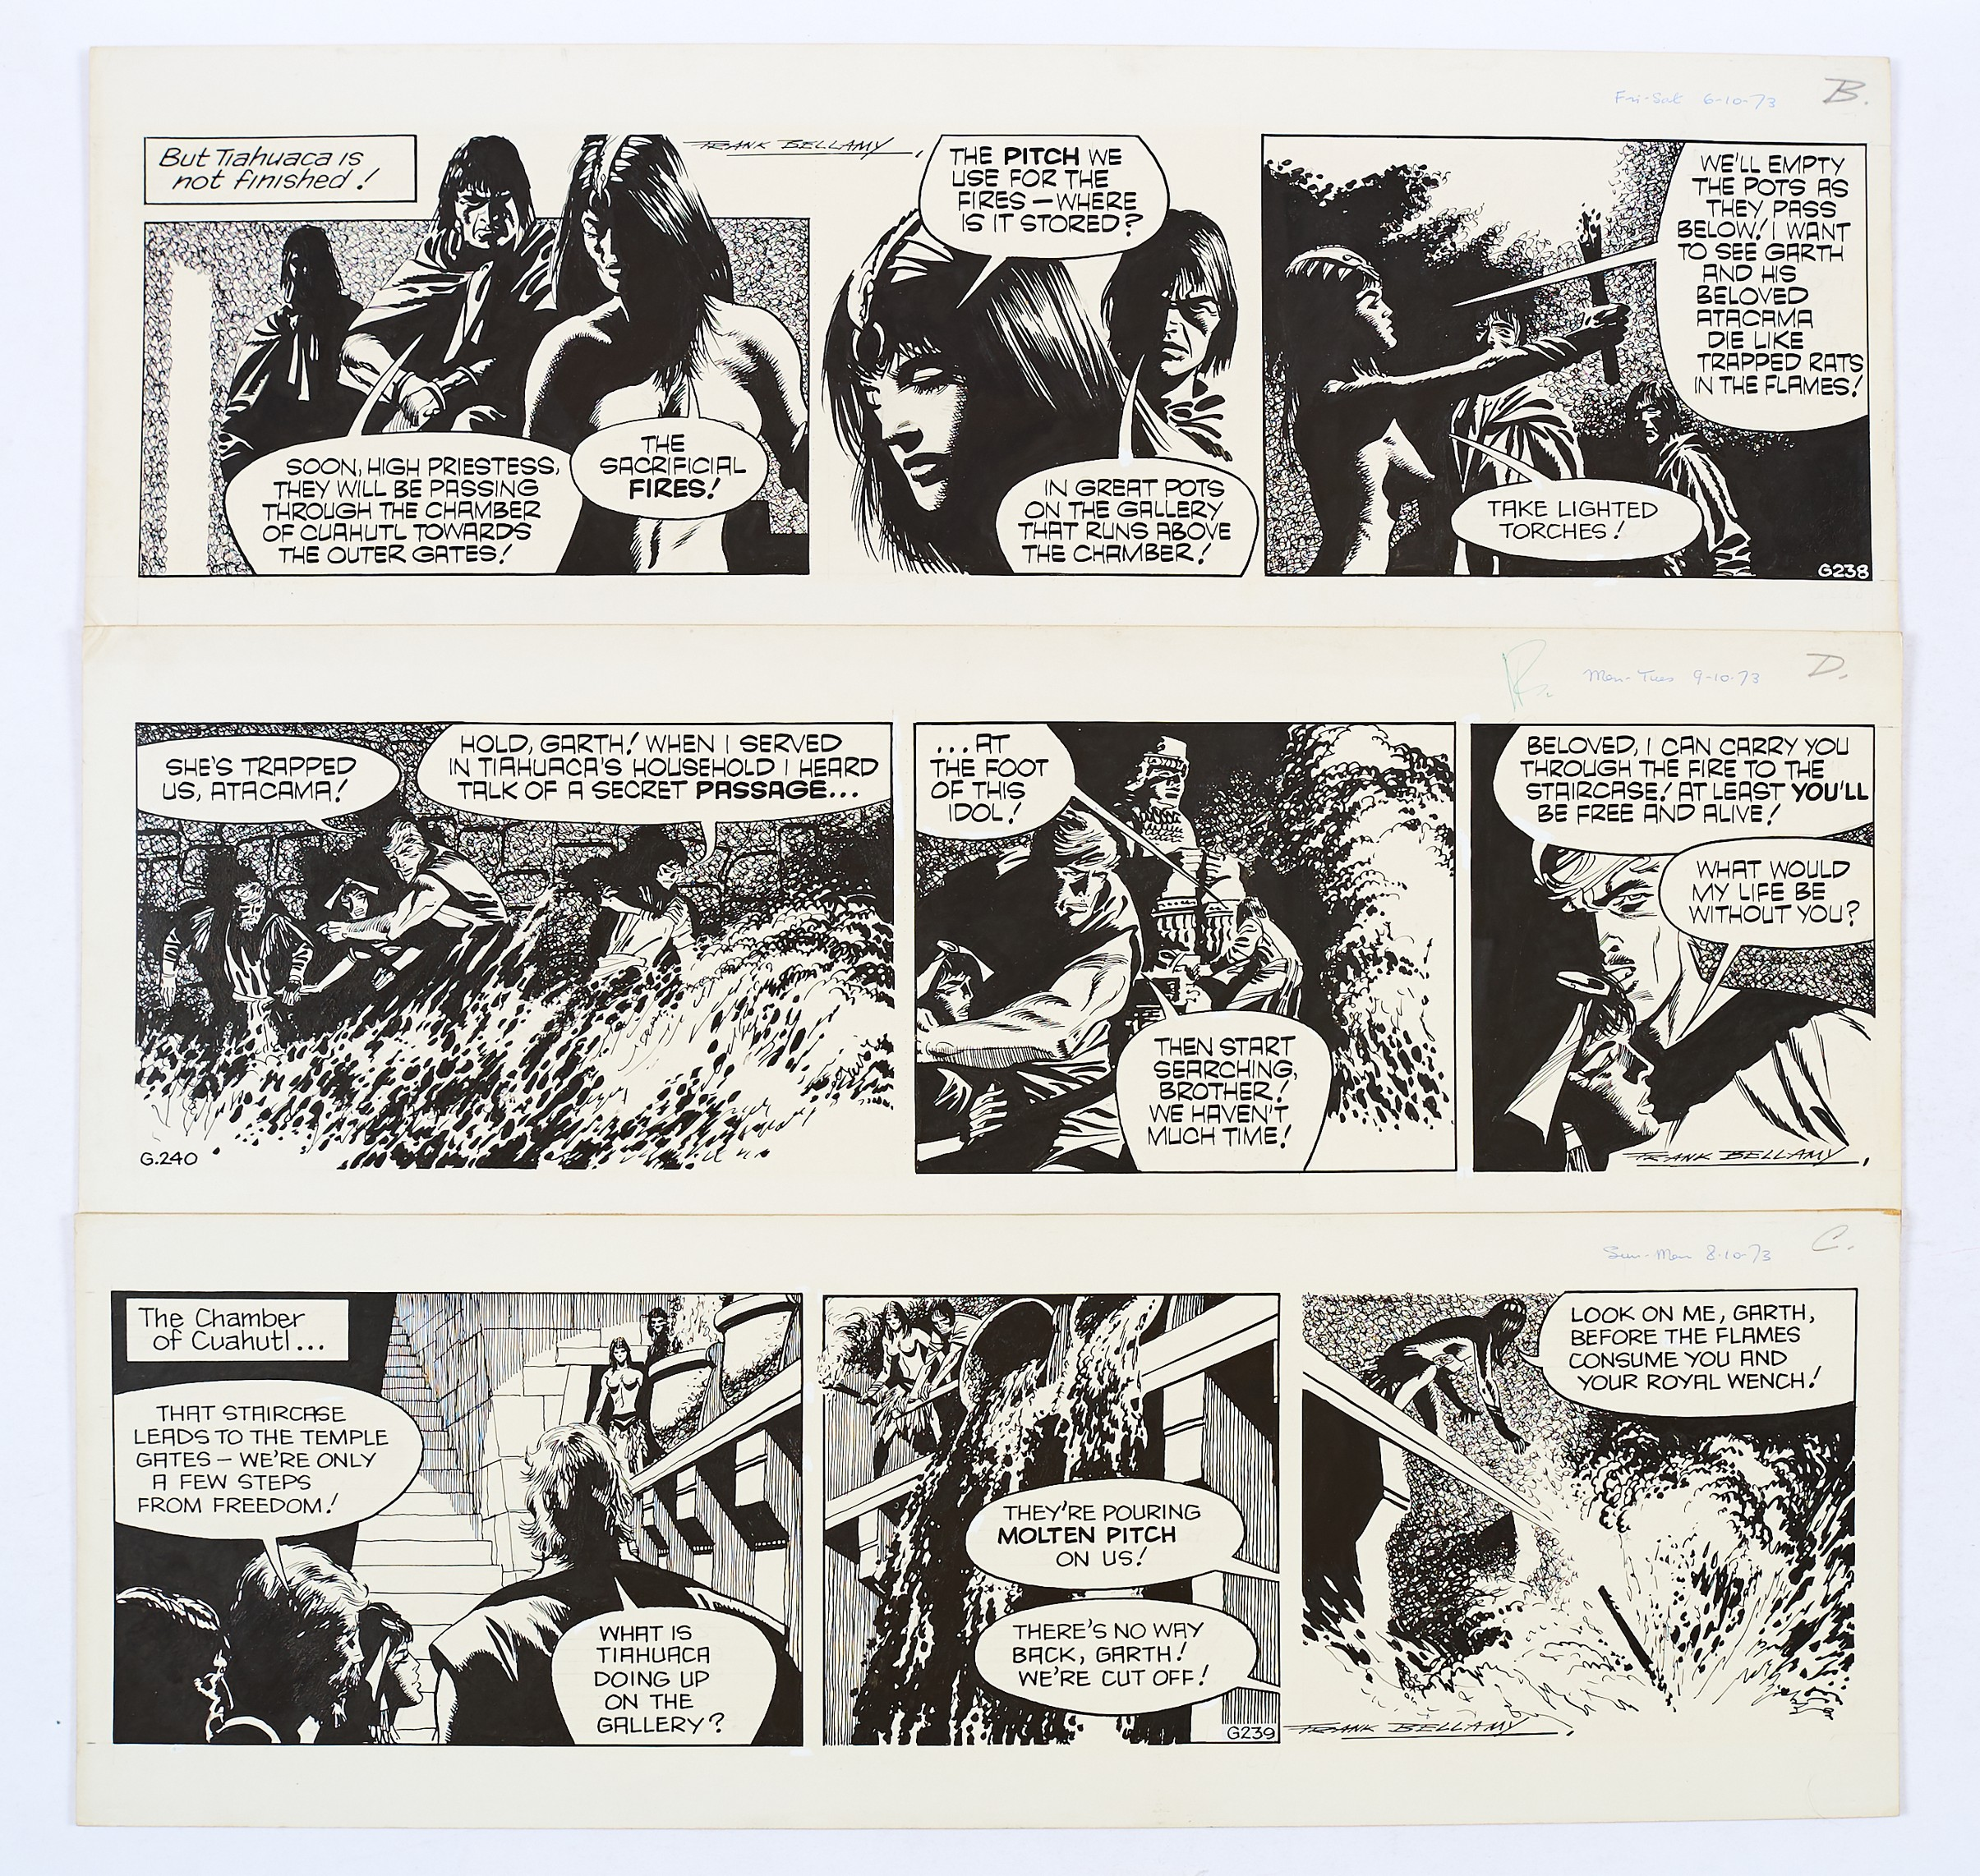 Lot 117 - Garth: 3 original consecutive artworks (1973) drawn and signed by Frank Bellamy from the Daily